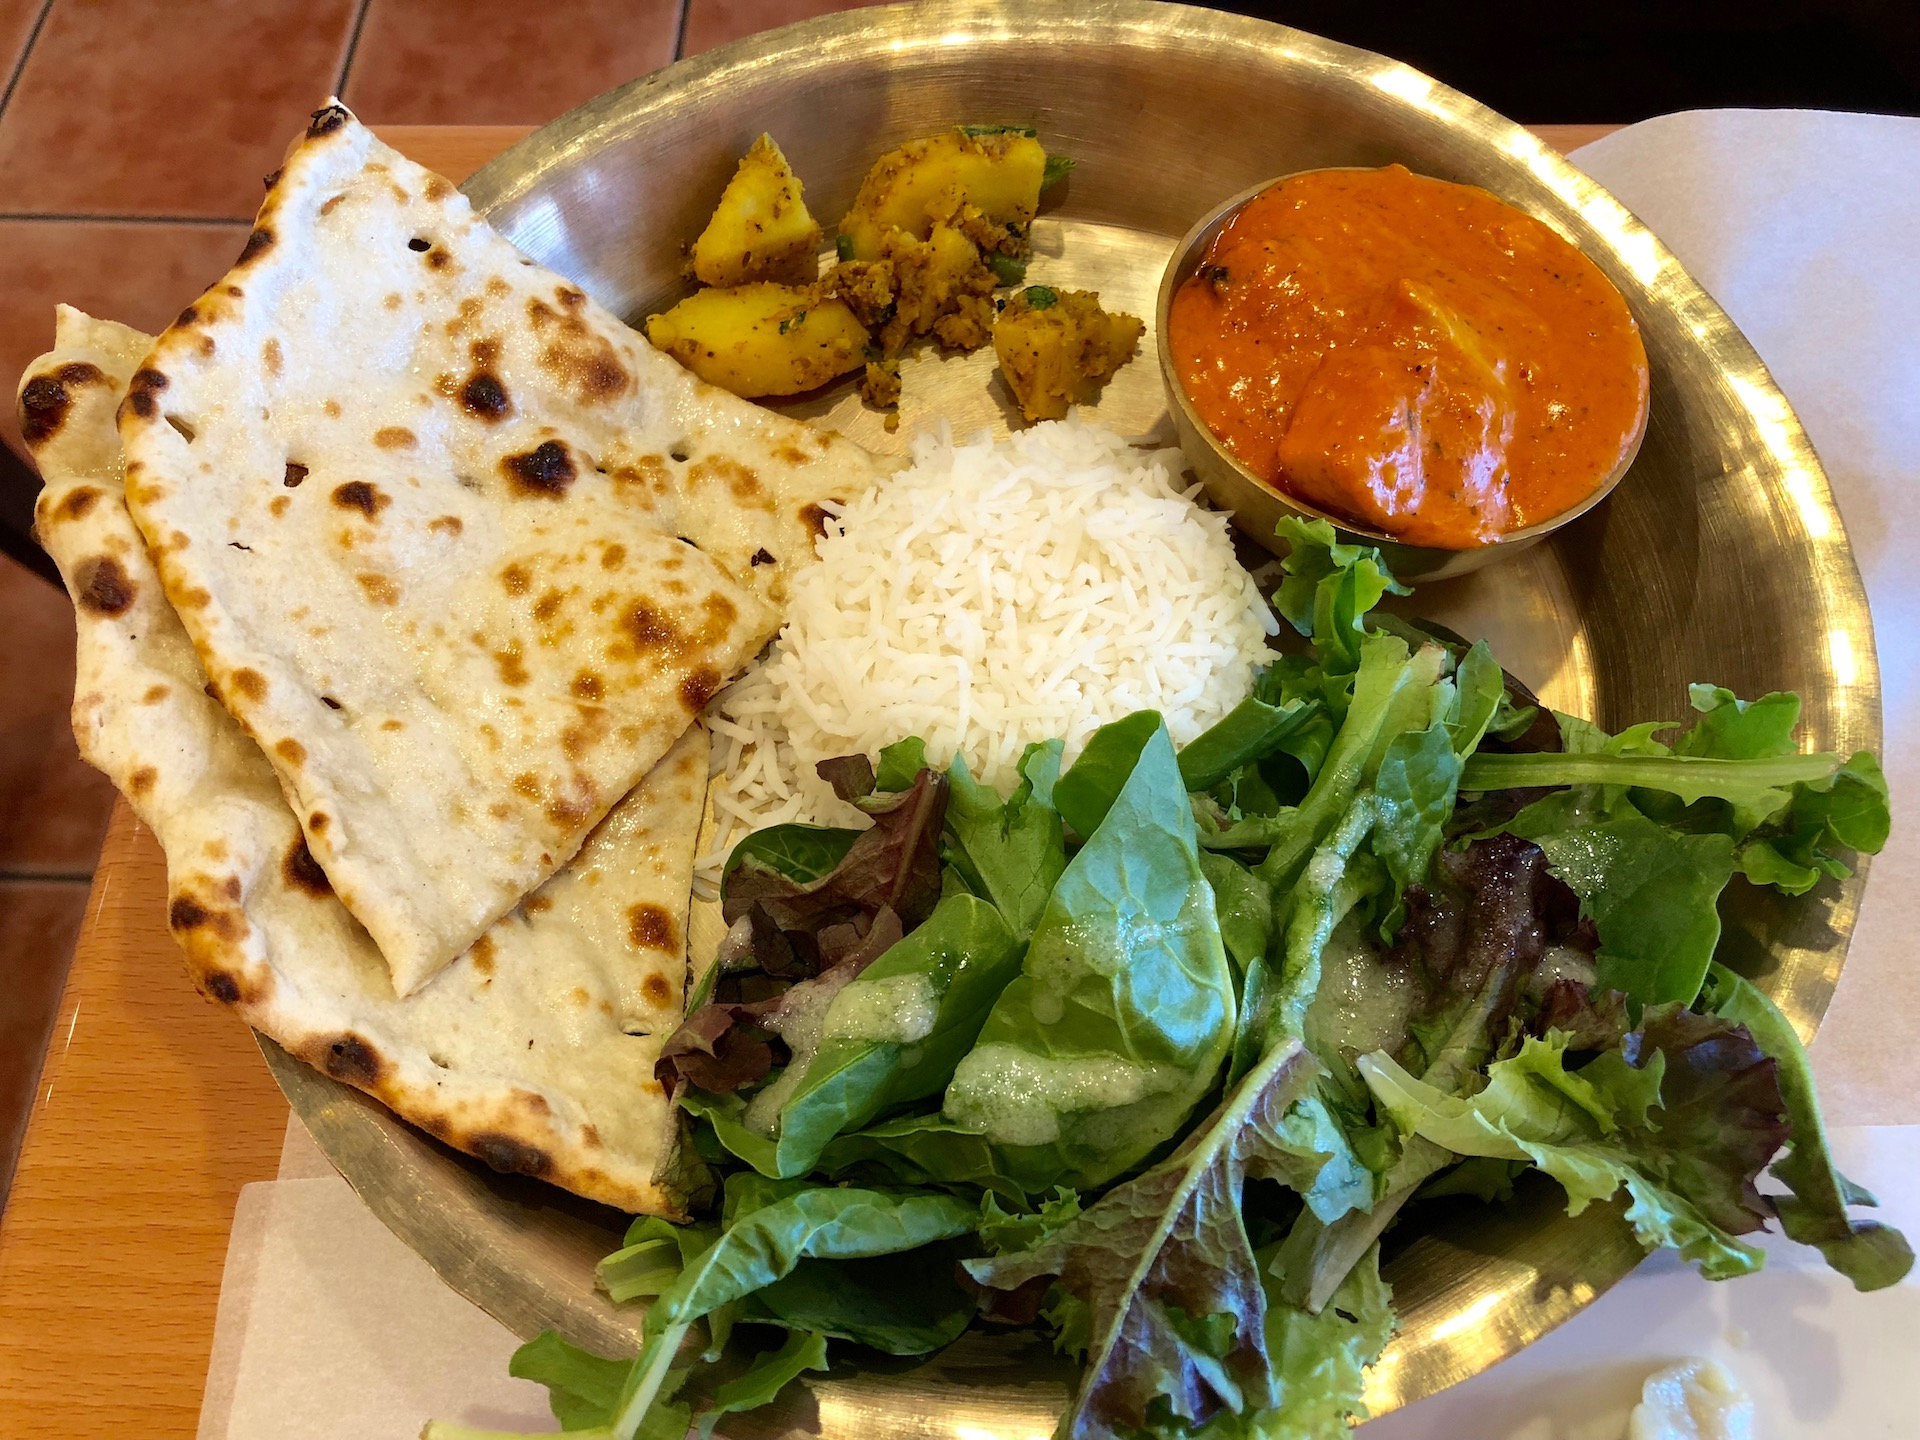 Cuisine of Nepal's signature chicken and cashew cream curry, served as a thali platter at lunch